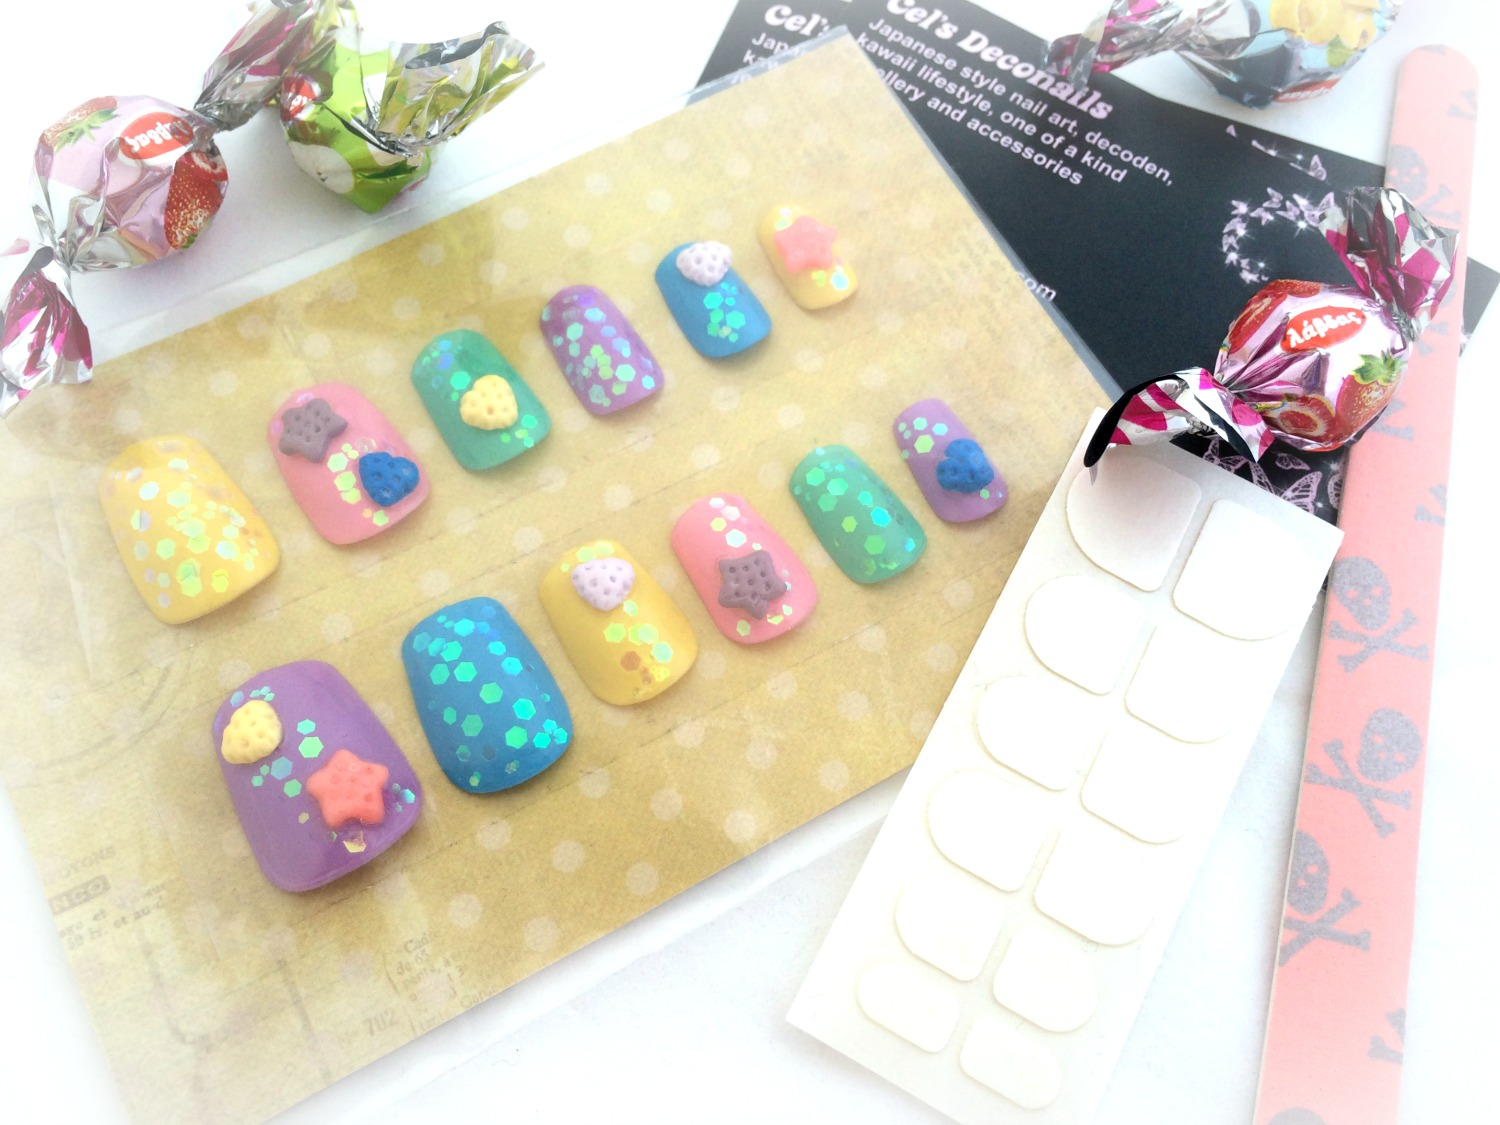 3d sweets kawaii press on nails pastel cookie japanese nail art 3d sweets kawaii press on nails pastel cookie japanese nail art thumbnail 4 prinsesfo Image collections